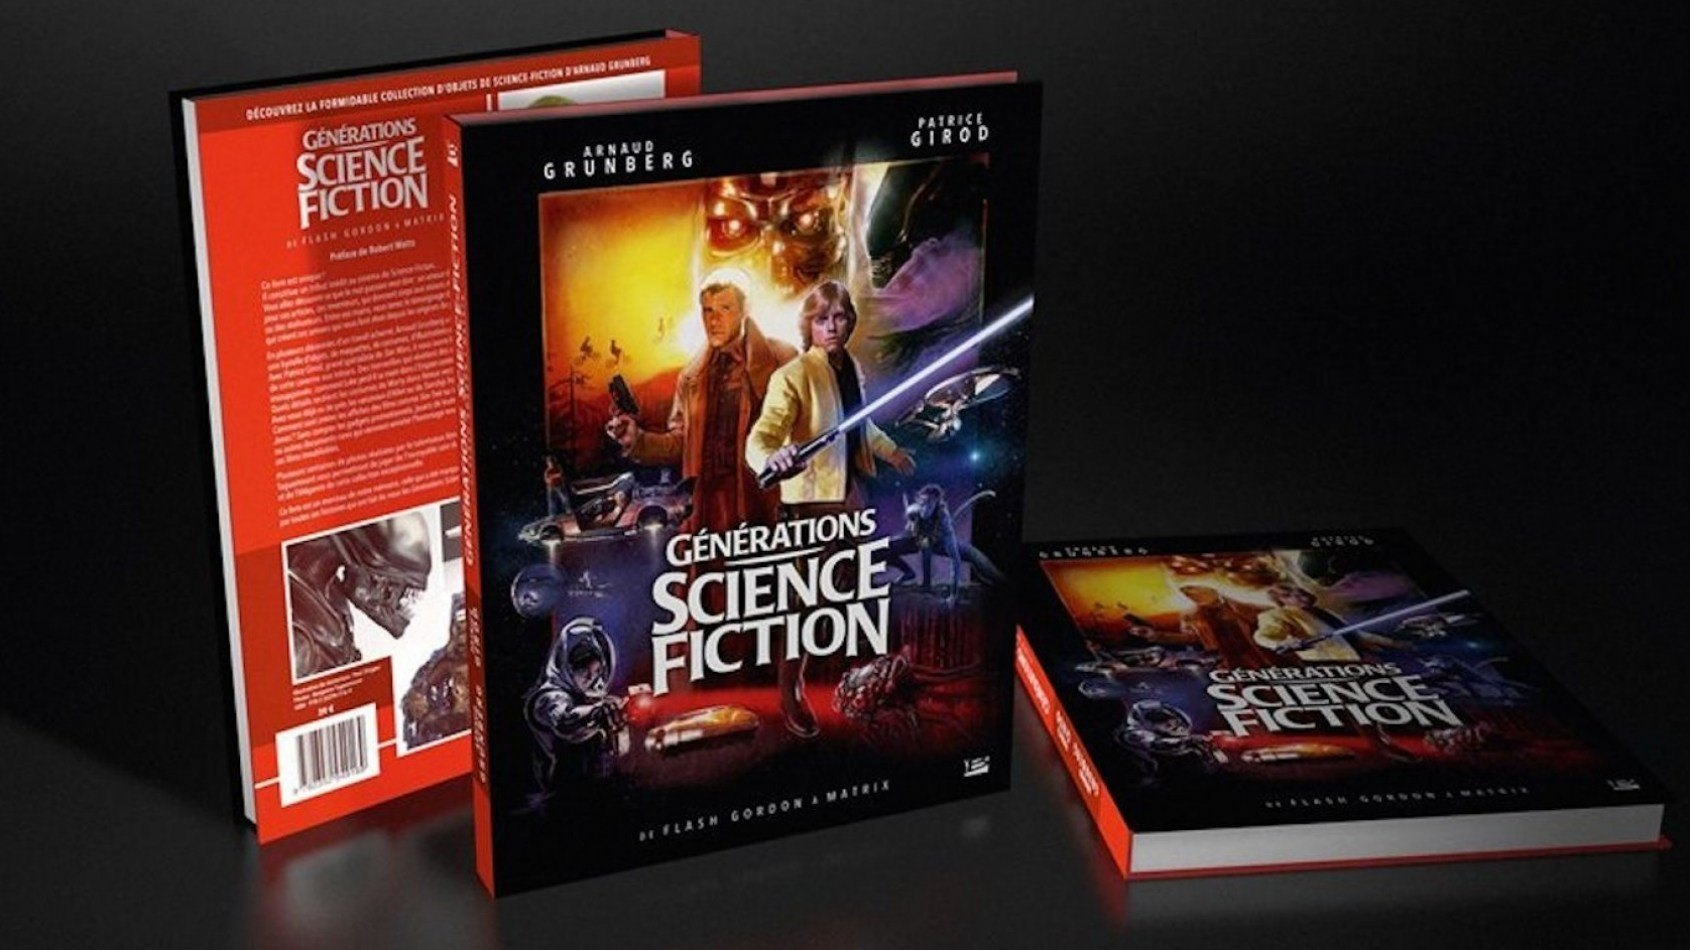 [Bragelonne] Sortie de G�n�rations Science Fiction